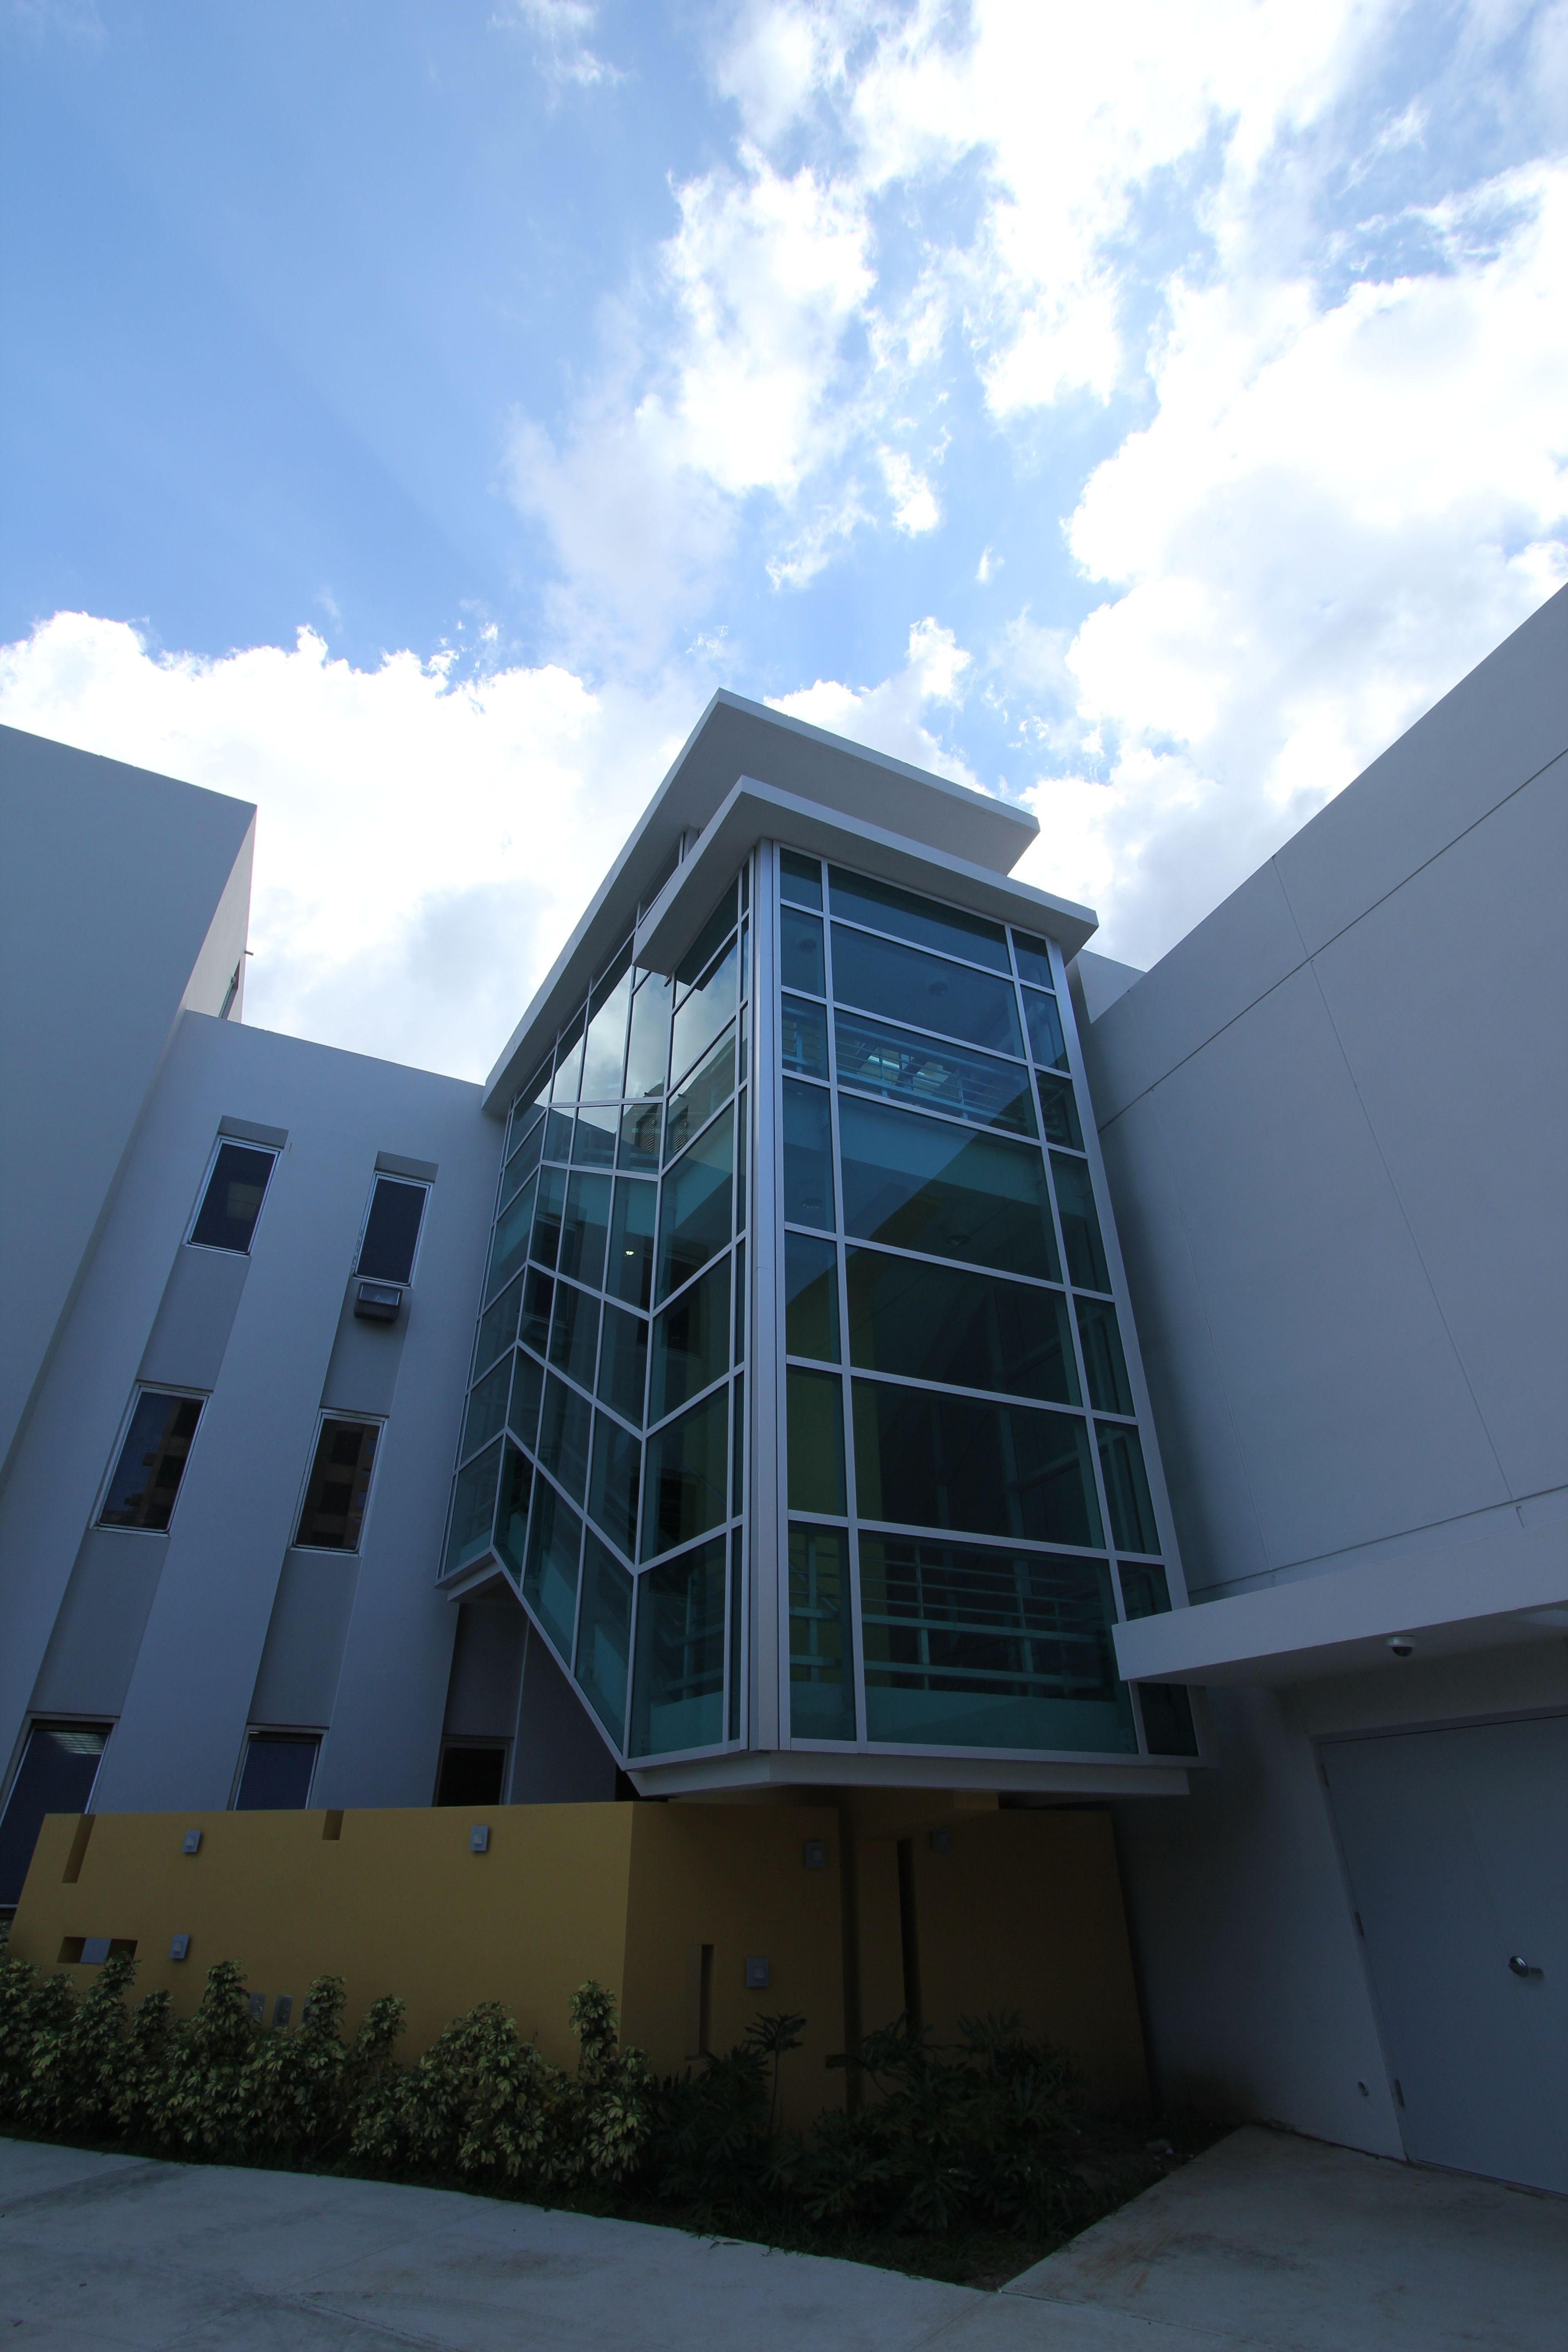 Exterior By Sagar Morkhade Vdraw Architecture 8793196382: Pin By CMA Architects & Engineers LLC On Pediatric Hospital